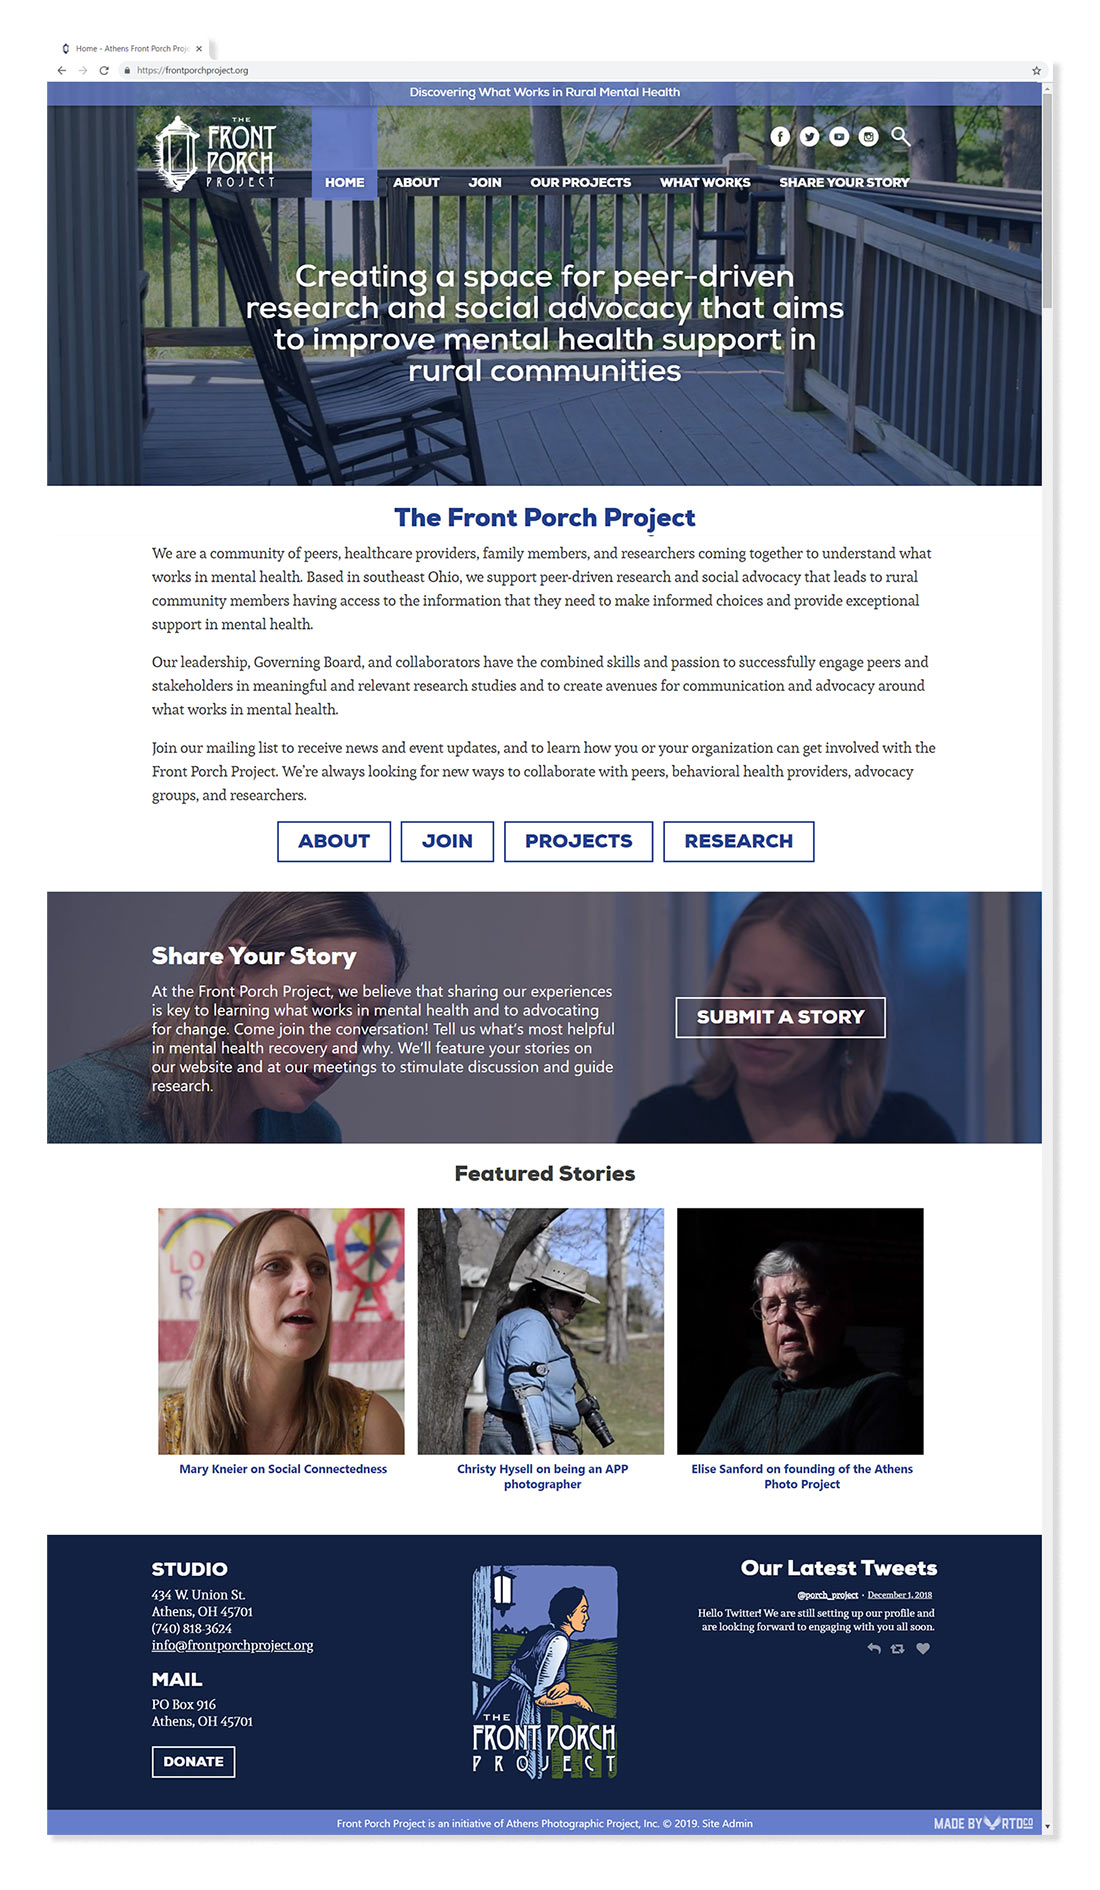 Front Porch Project website homepage mockup designed by Red Tail Design.